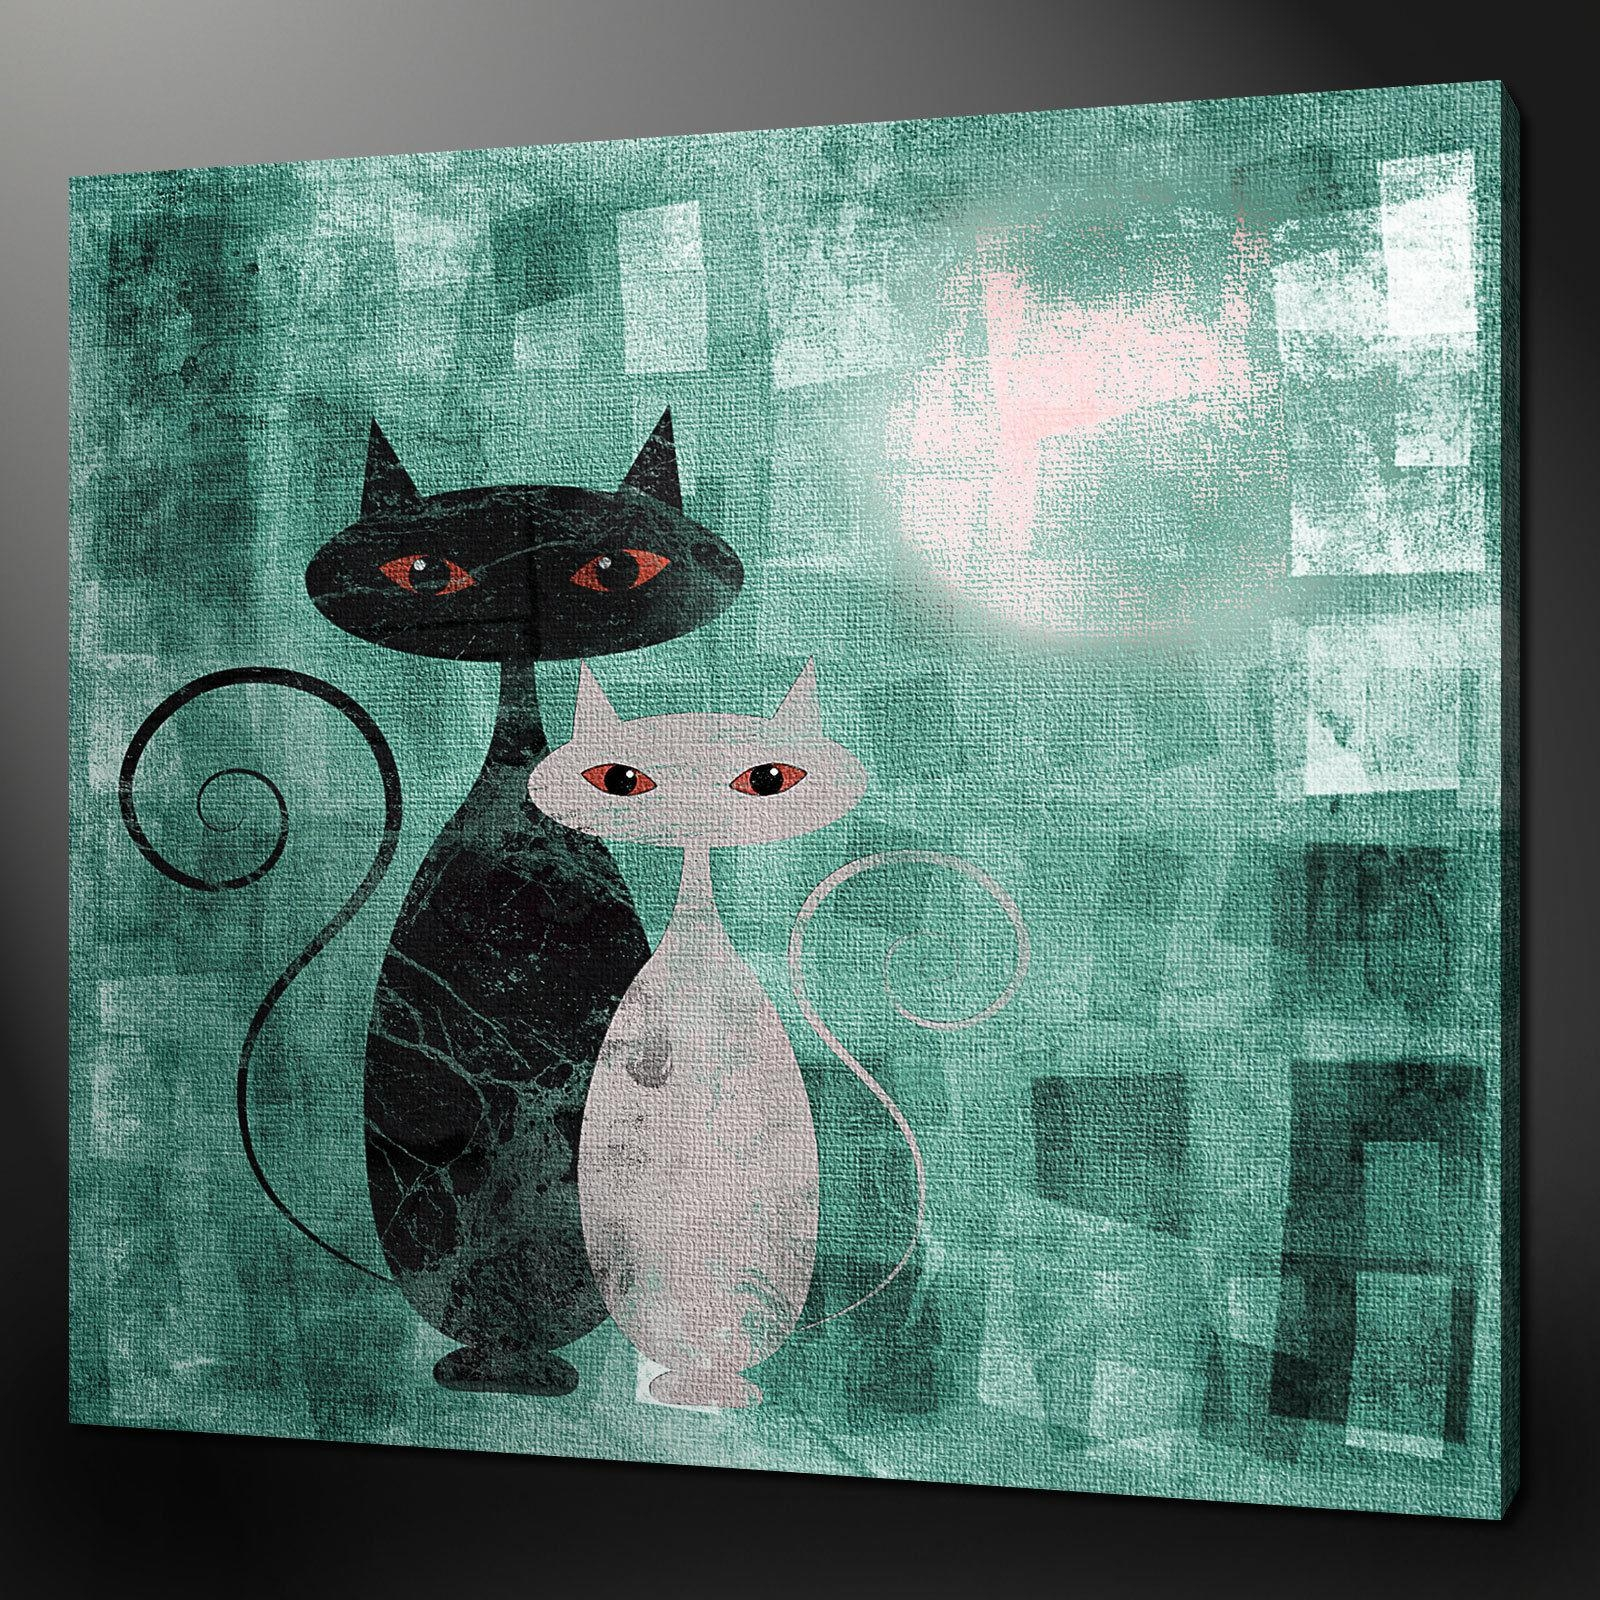 "Cats Art Deco Teal Aqua Canvas Wall Art Pictures Prints 24""x24 With Regard To Teal Wall Art Uk (Image 5 of 20)"